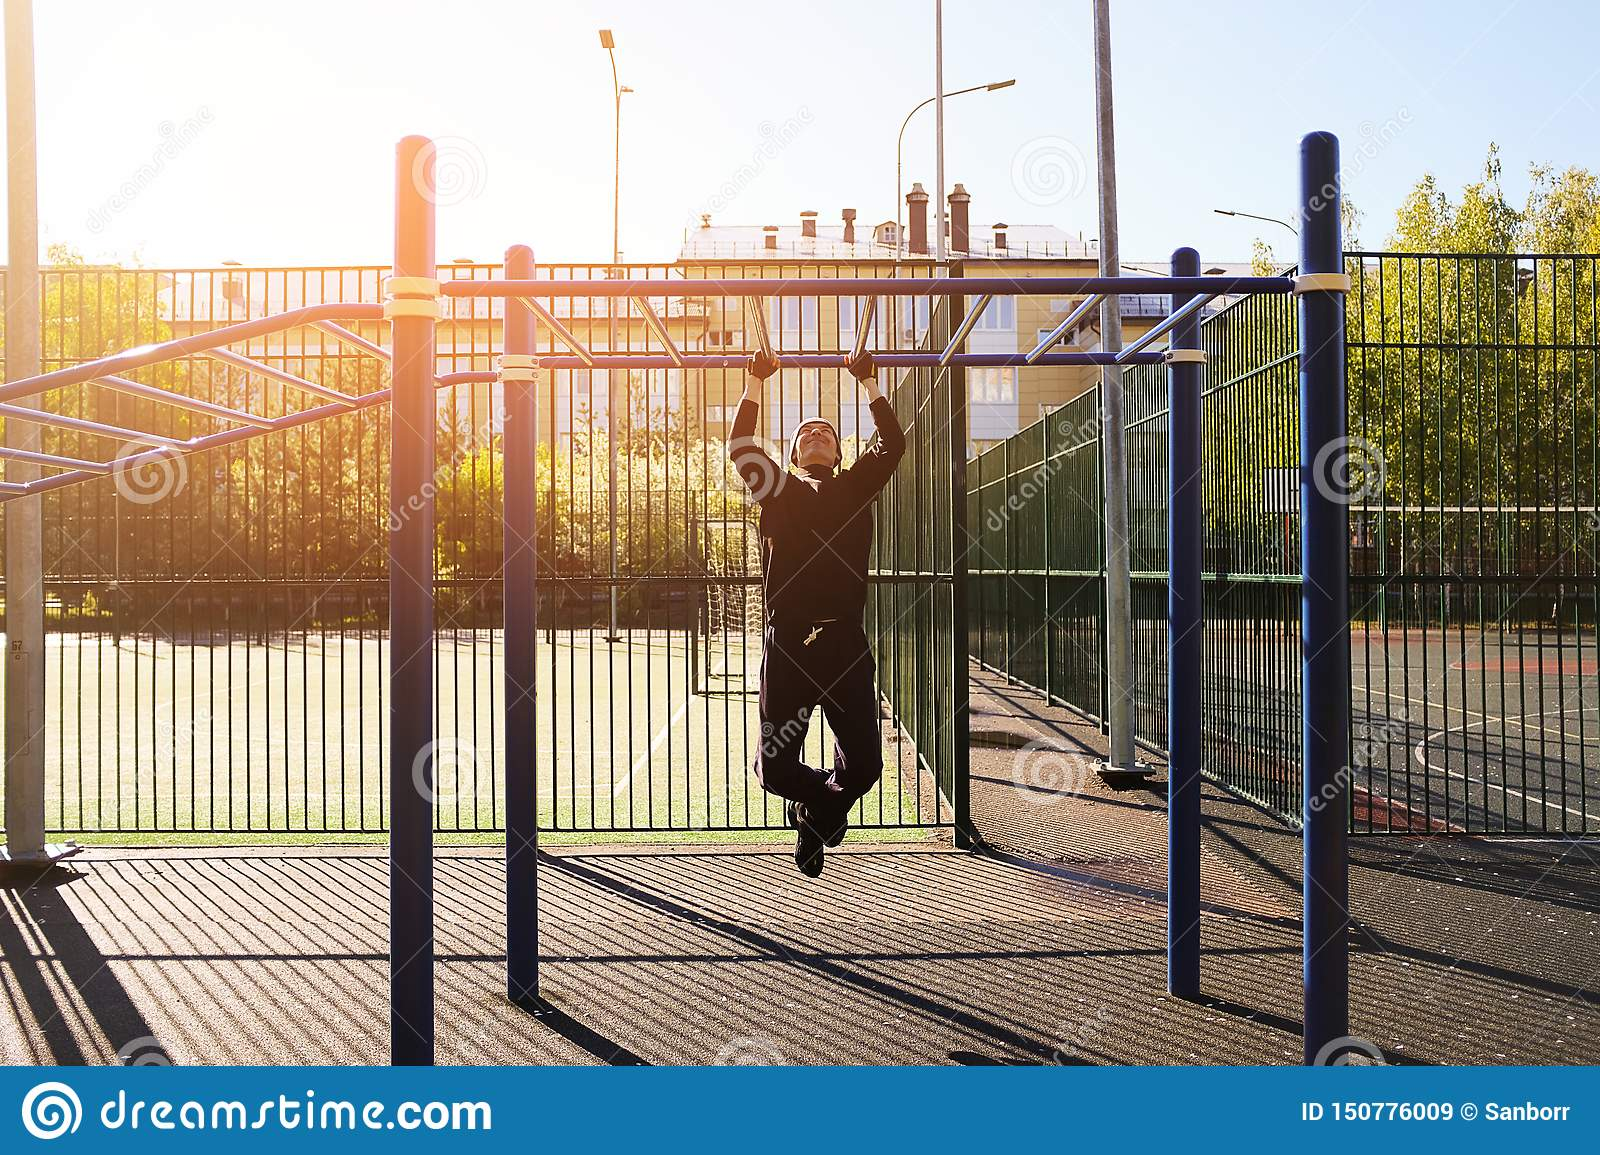 A young male athlete does pull-UPS exercises on a horizontal bar, on a sports ground, outdoors, at dawn or on a Sunny day. The